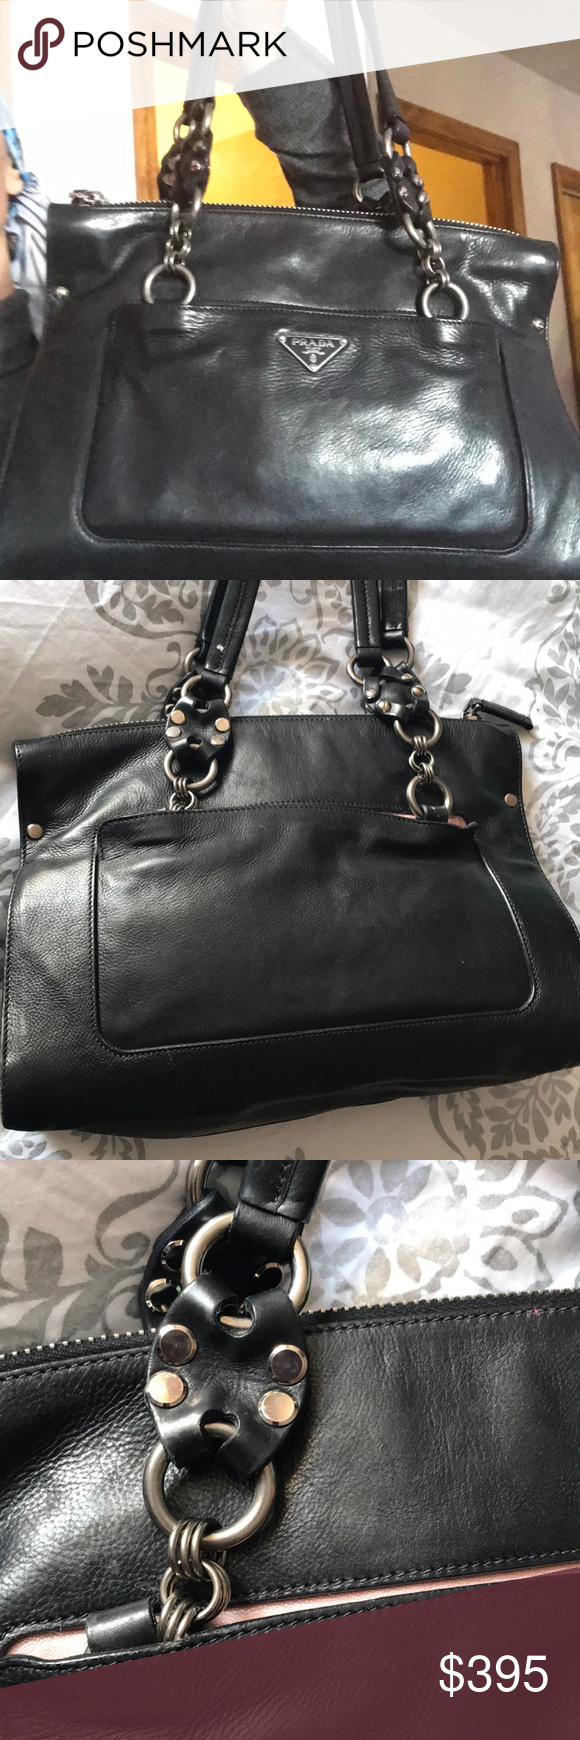 f31771dc672852 Prada Leather Motorcycle Biker Bag Purse Very cool style- rare find.  Leather interior. Silky lined inner pocket that zips. Lambskin. Prada Bags